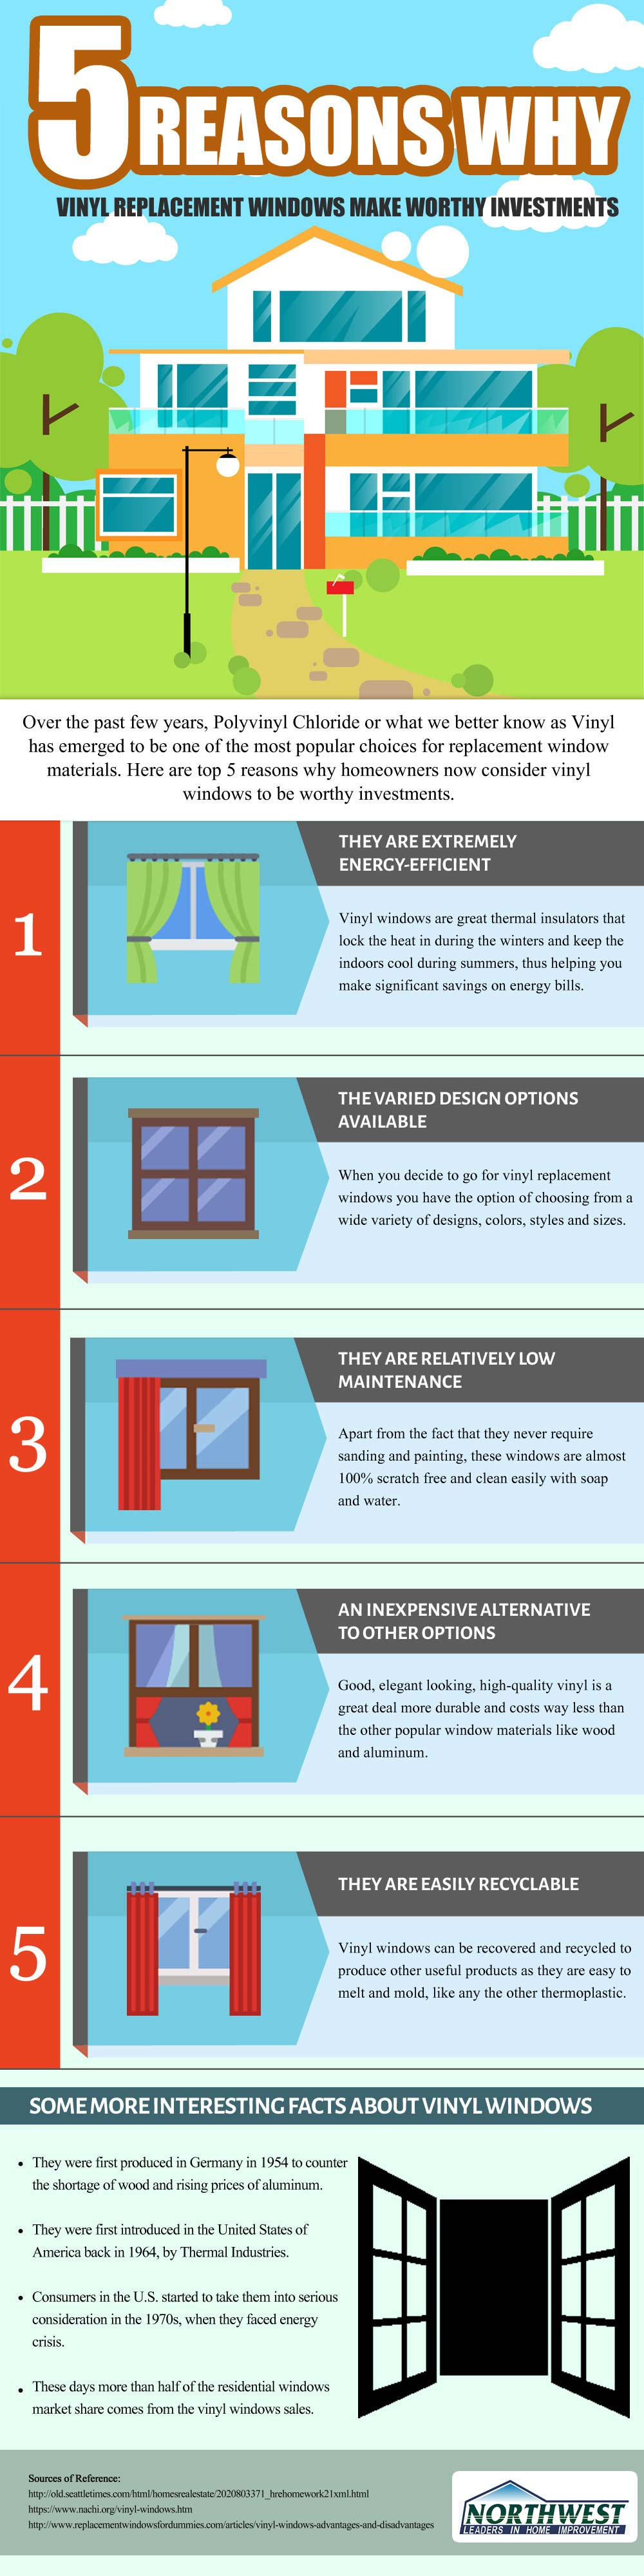 Northwest Exterior 5 Reasons to Use Vinyl Replacement Windows